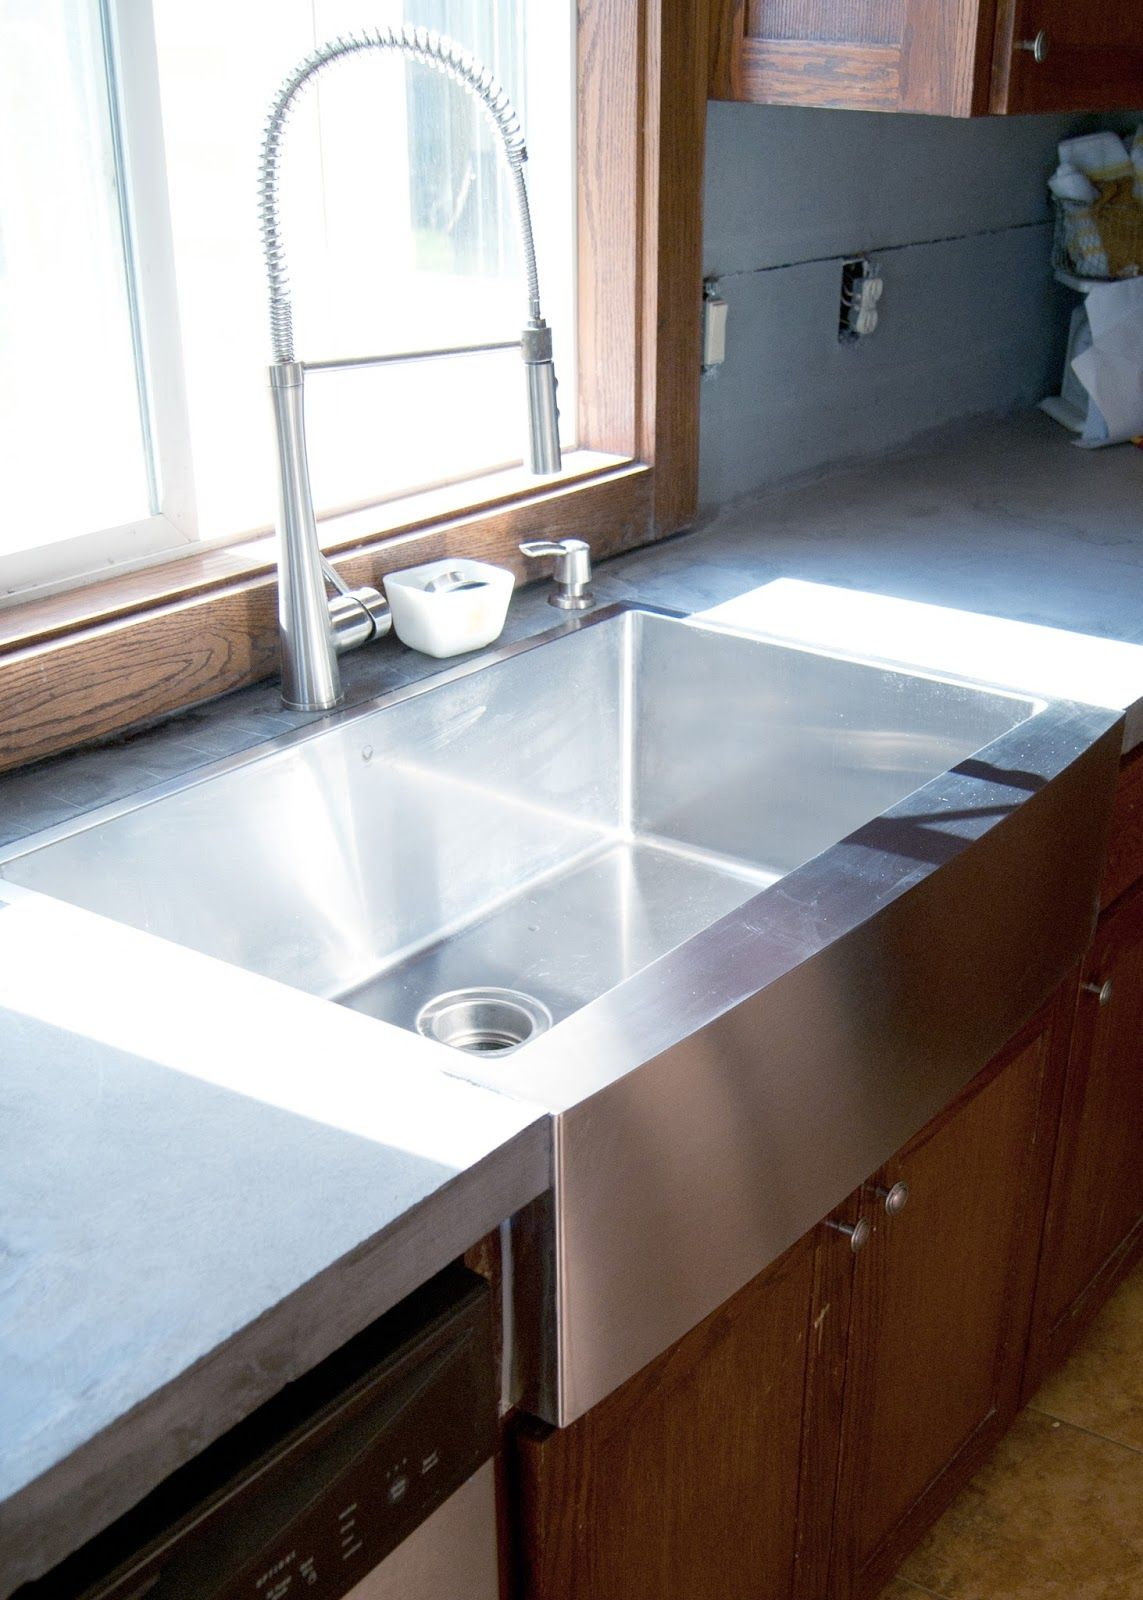 Installing Stainless Steel Countertops New Stainless Steel Apron Front Sink How We Installed It In